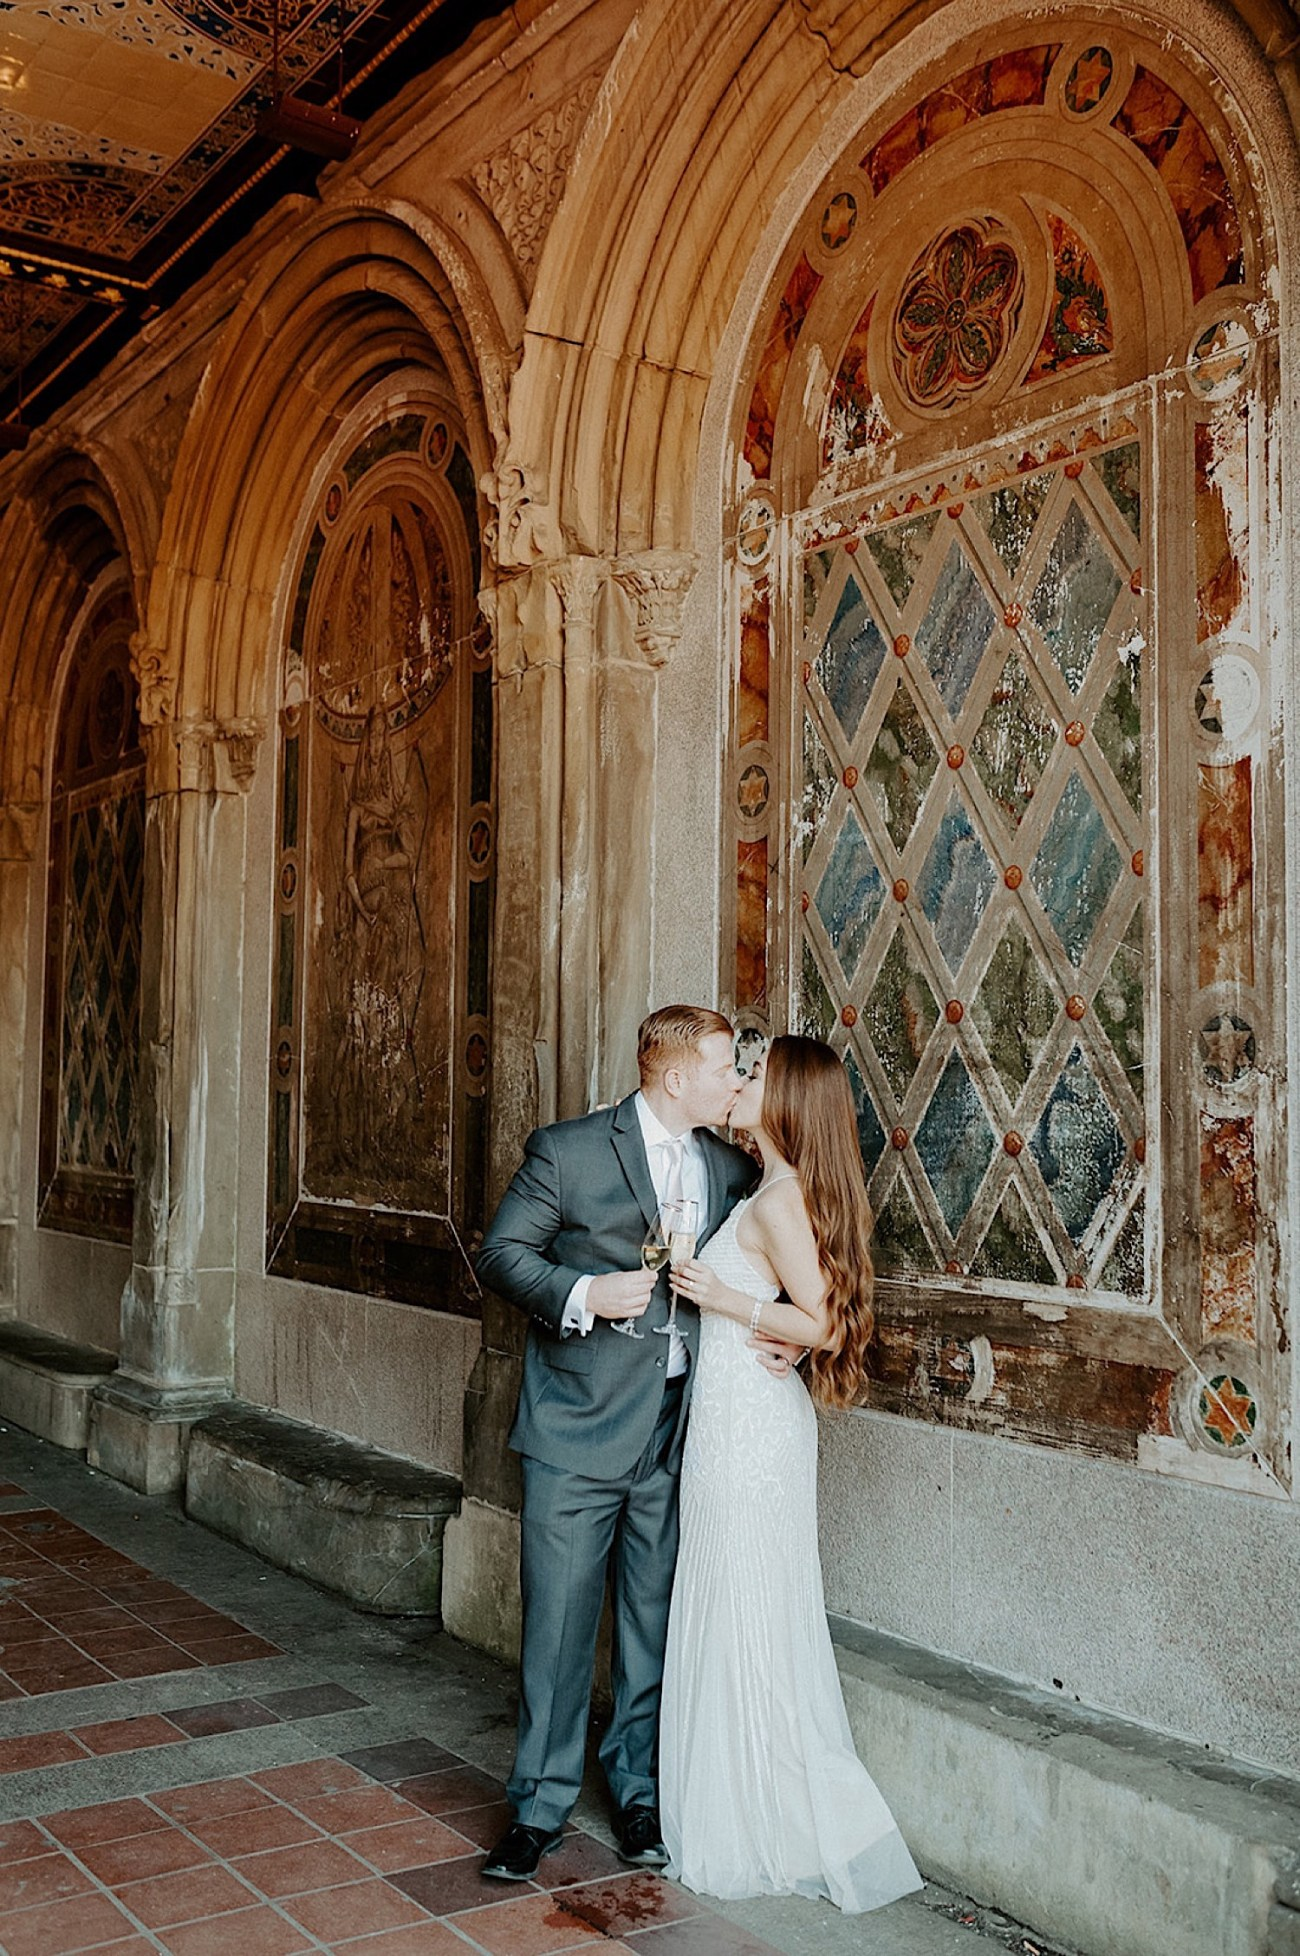 180 Central Park Elopement Bethesda Fountain Wedding Photos New York Wedding Photographer Central Park Wedding Photos